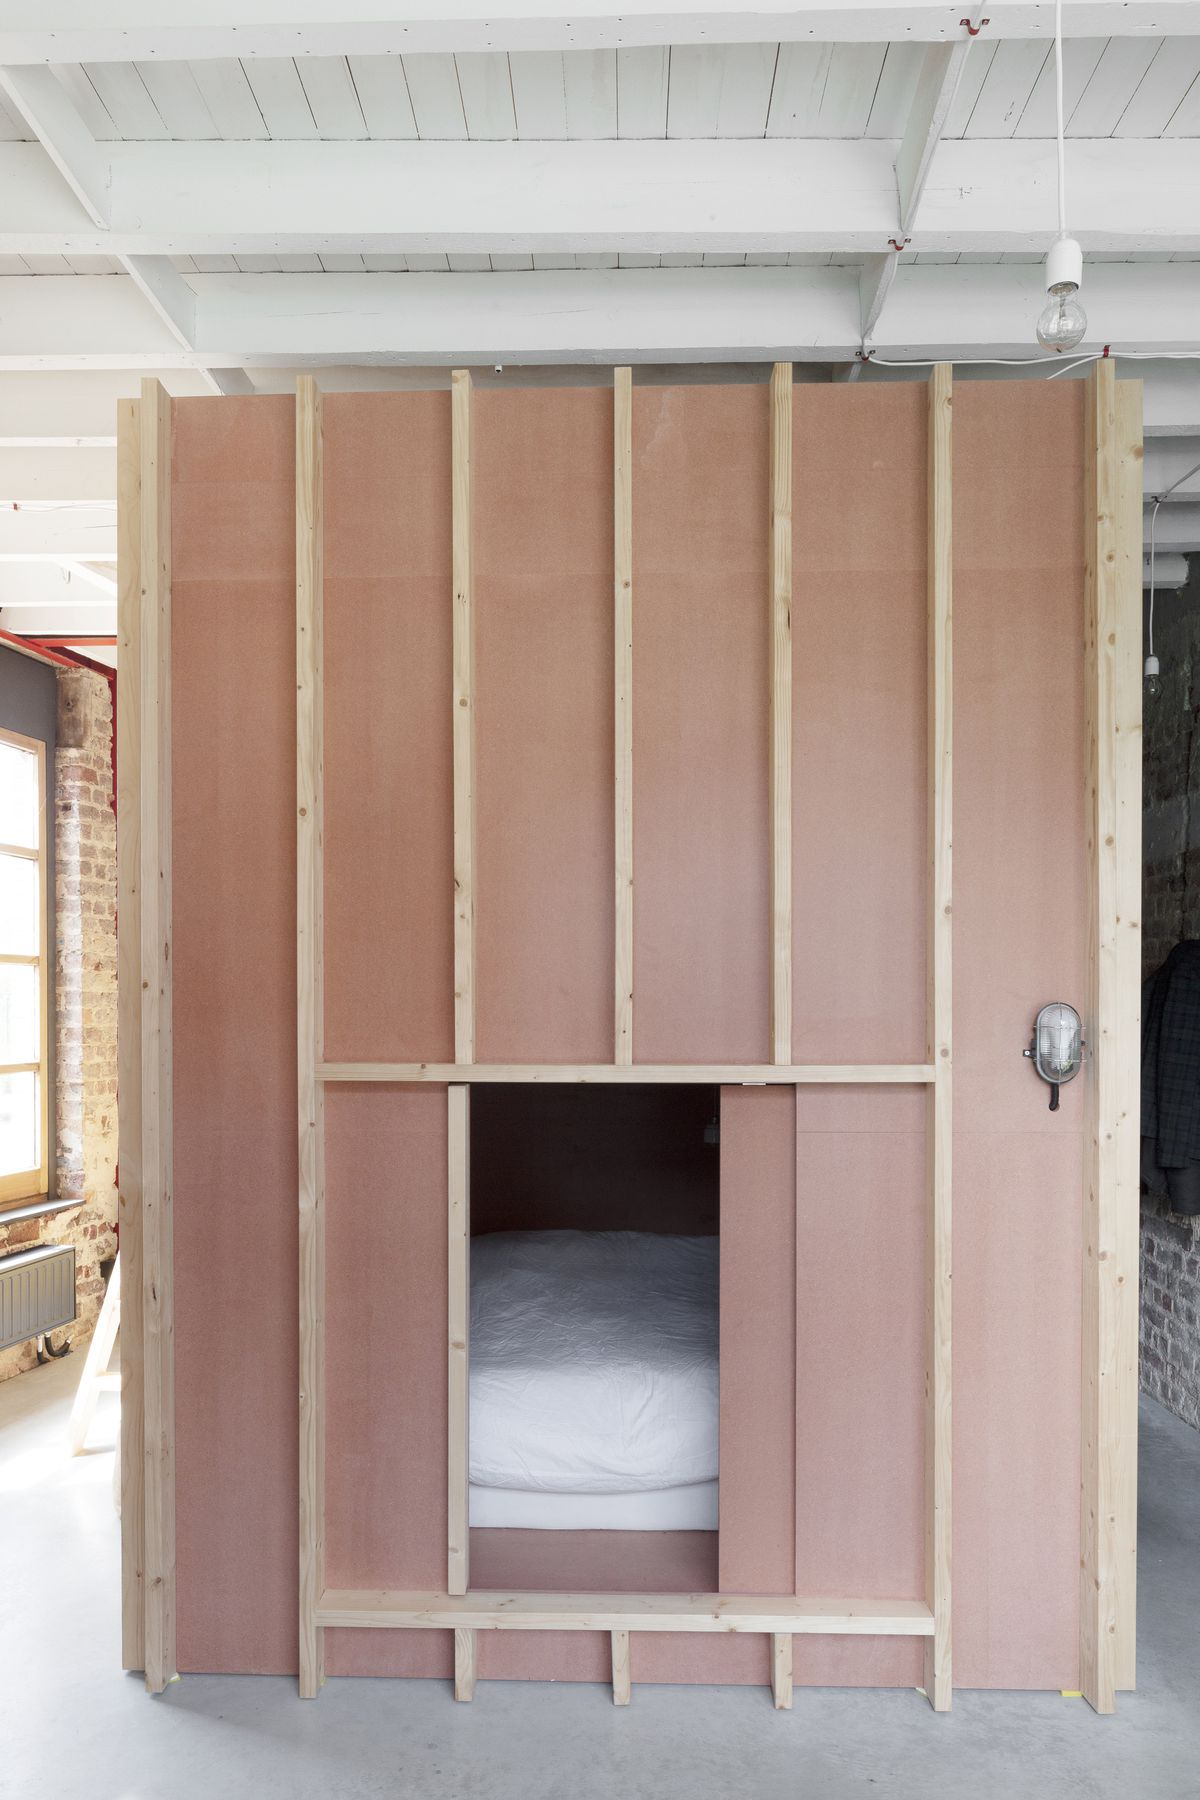 A wooden free standing room that has a bed nestled inside. The exterior is wooden. The floor is grey concrete.